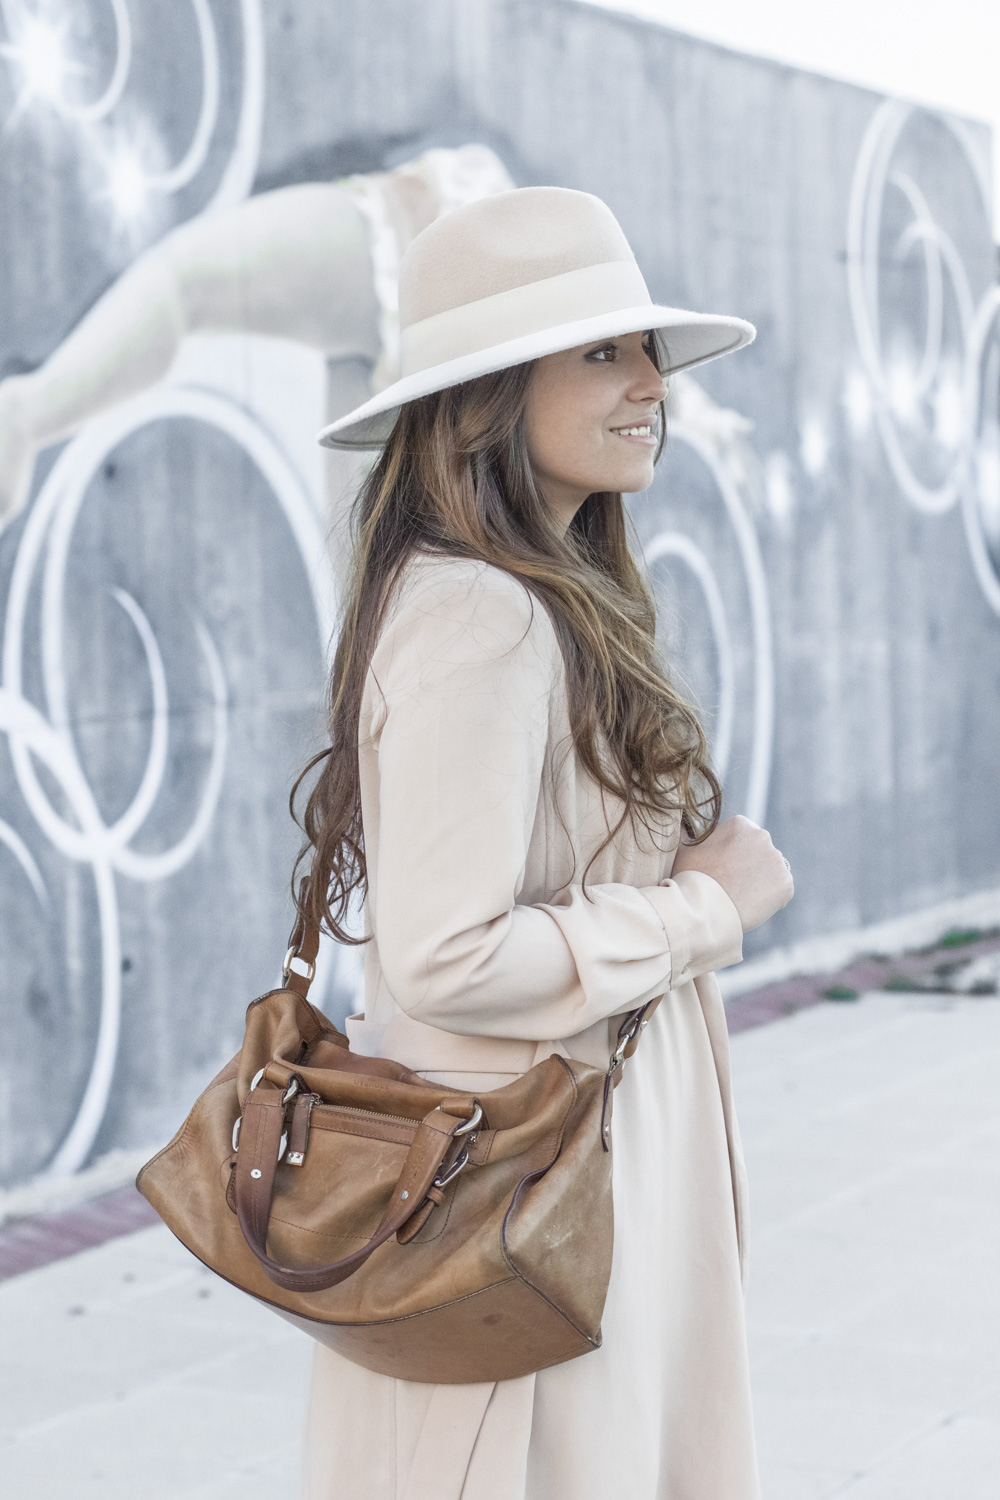 loreto_made_in_style_top_lencero_denim_trench_sombrero_blanco-25